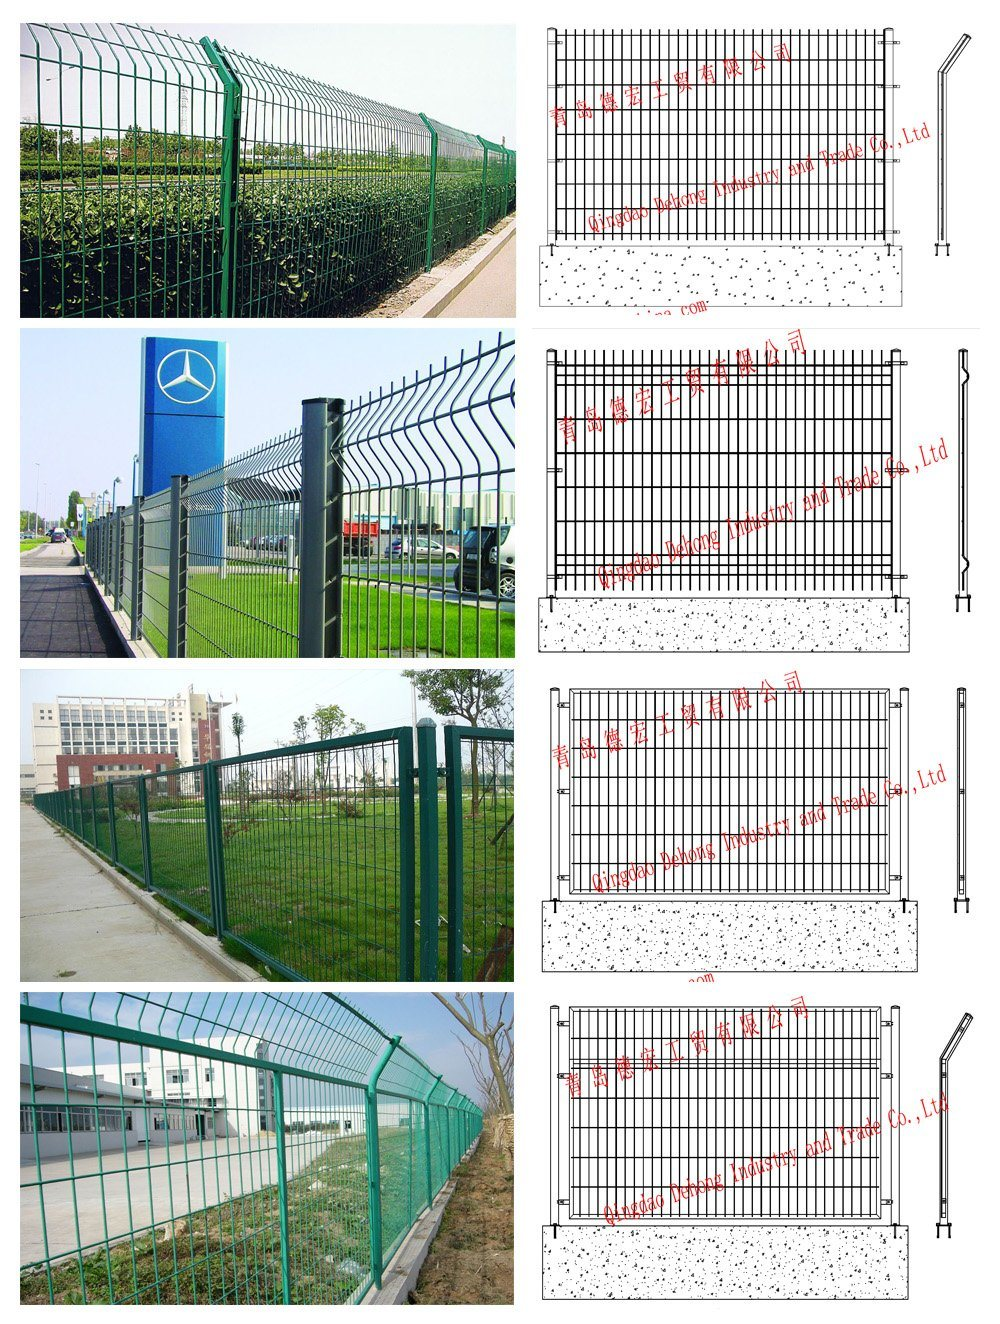 Attractive Ametco Wire Mesh Fence Panels Sketch - Electrical Diagram ...